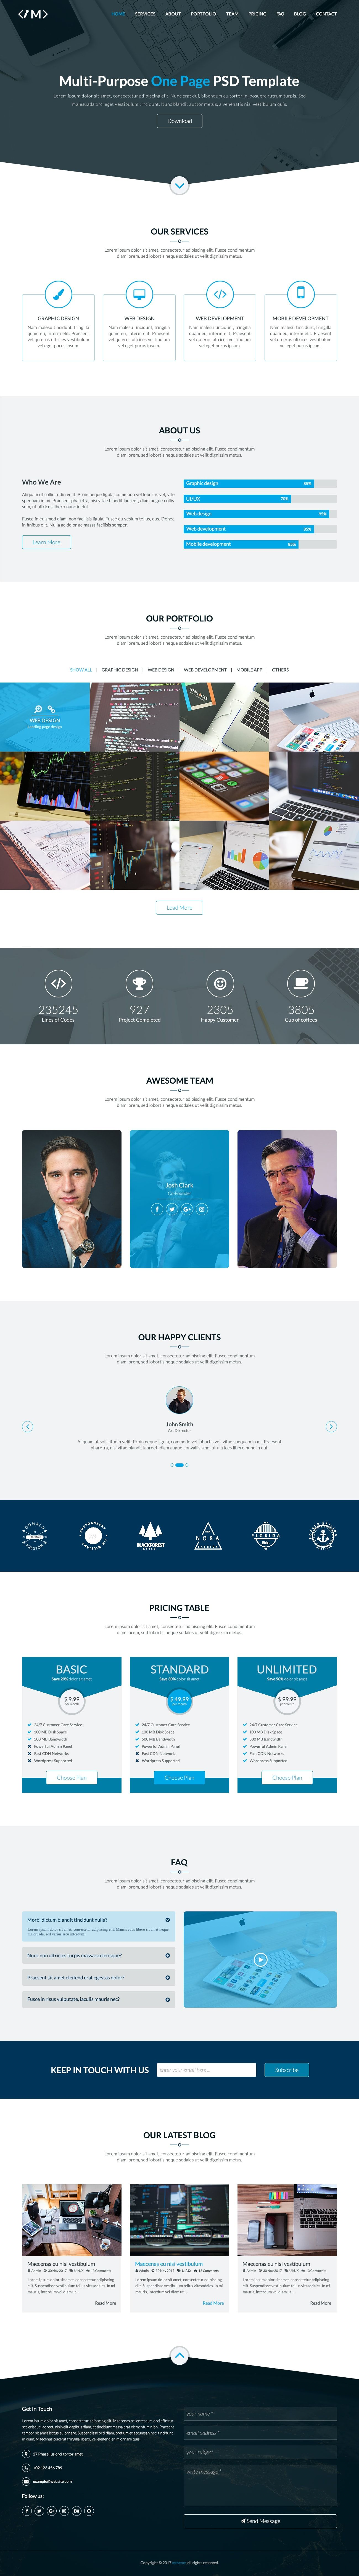 MTheme - Multi-Purpose One Page PSD Template Screenshot 3